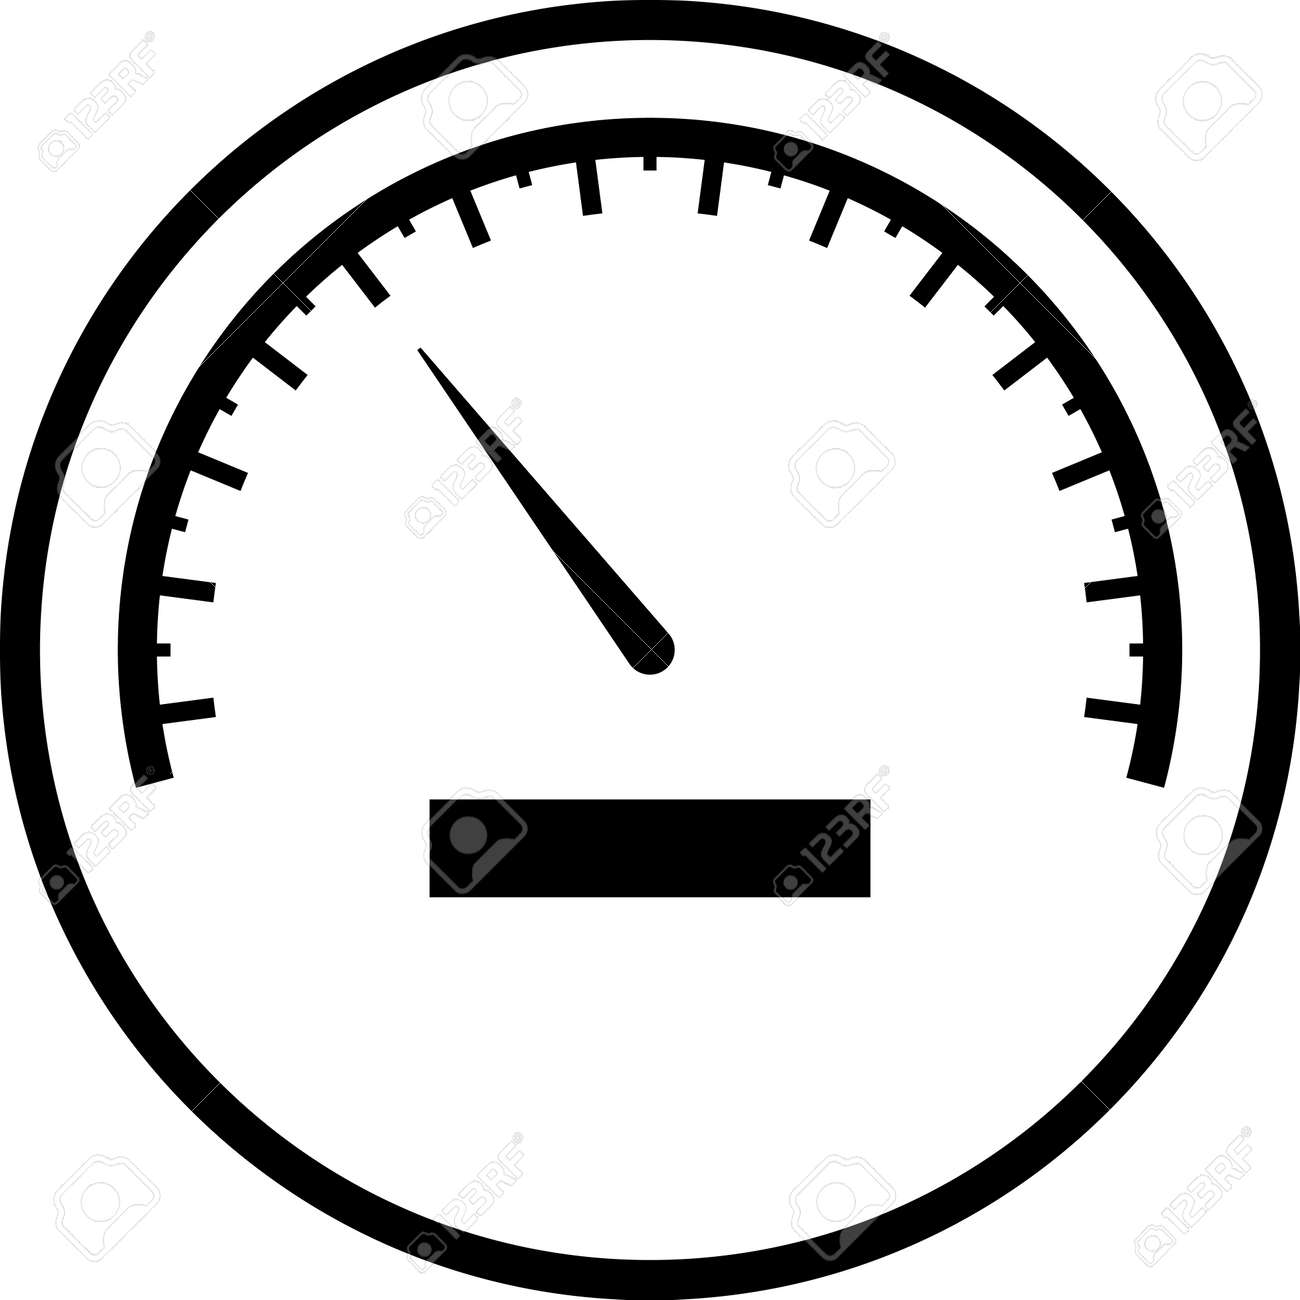 speedometer vector icon royalty free cliparts vectors and stock rh 123rf com speedometer vector icon speedometer vector or scalar